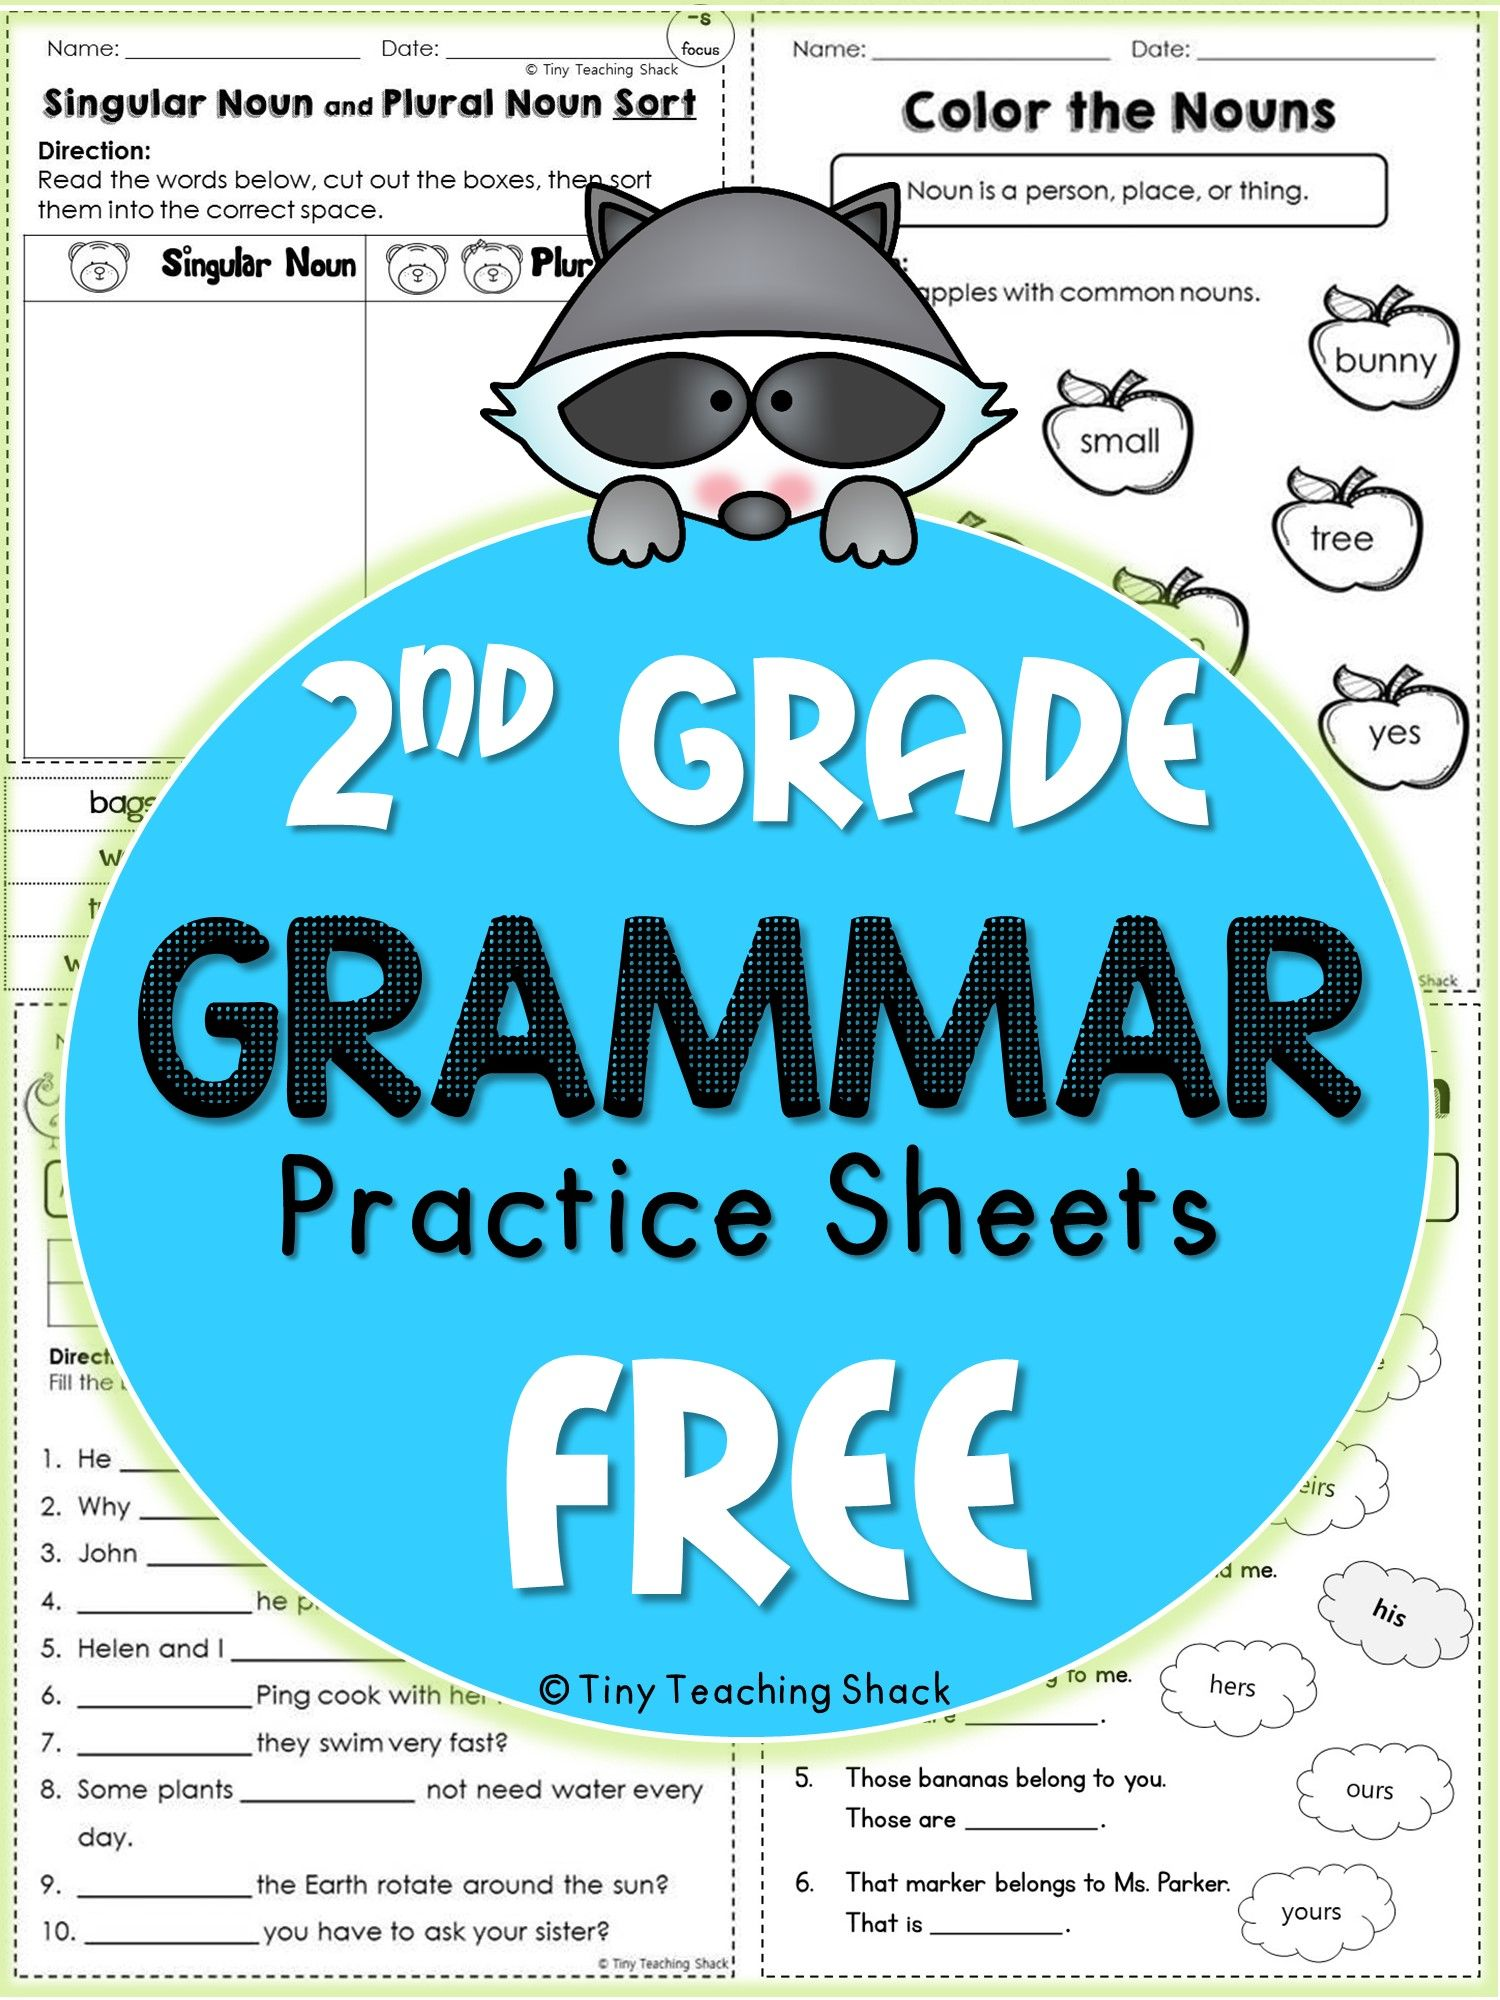 These Handy No Prep Practice Sheets Should Help Your Students Get Extra Practice On Their